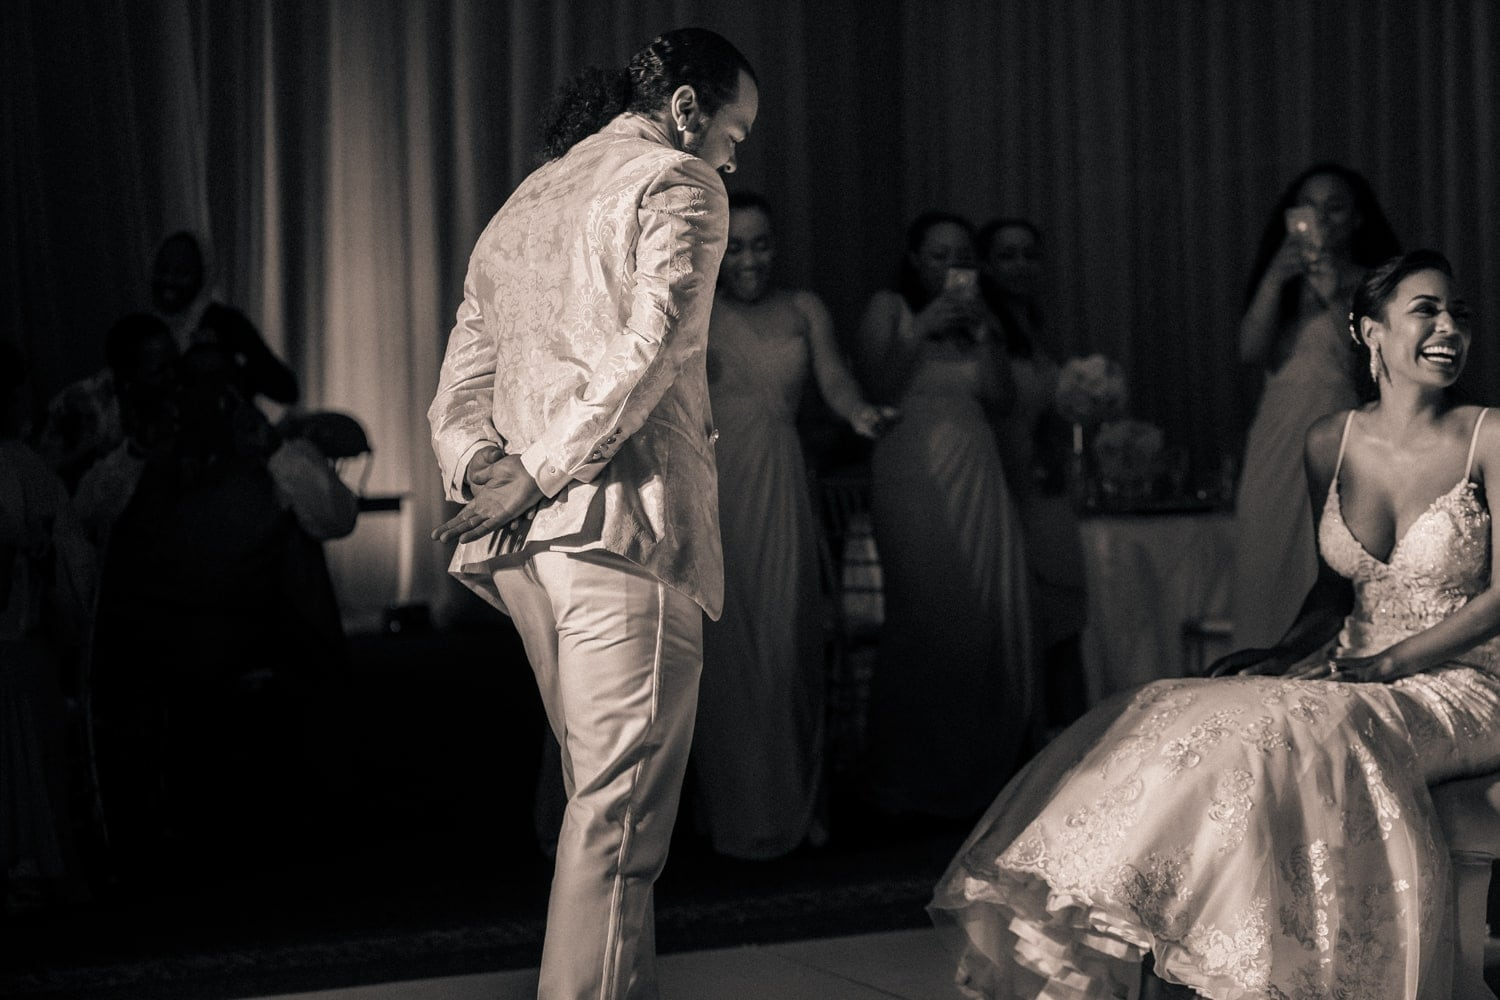 Groom's about to remove his bride's garter at wedding reception at Hard Rock in Punta Cana.